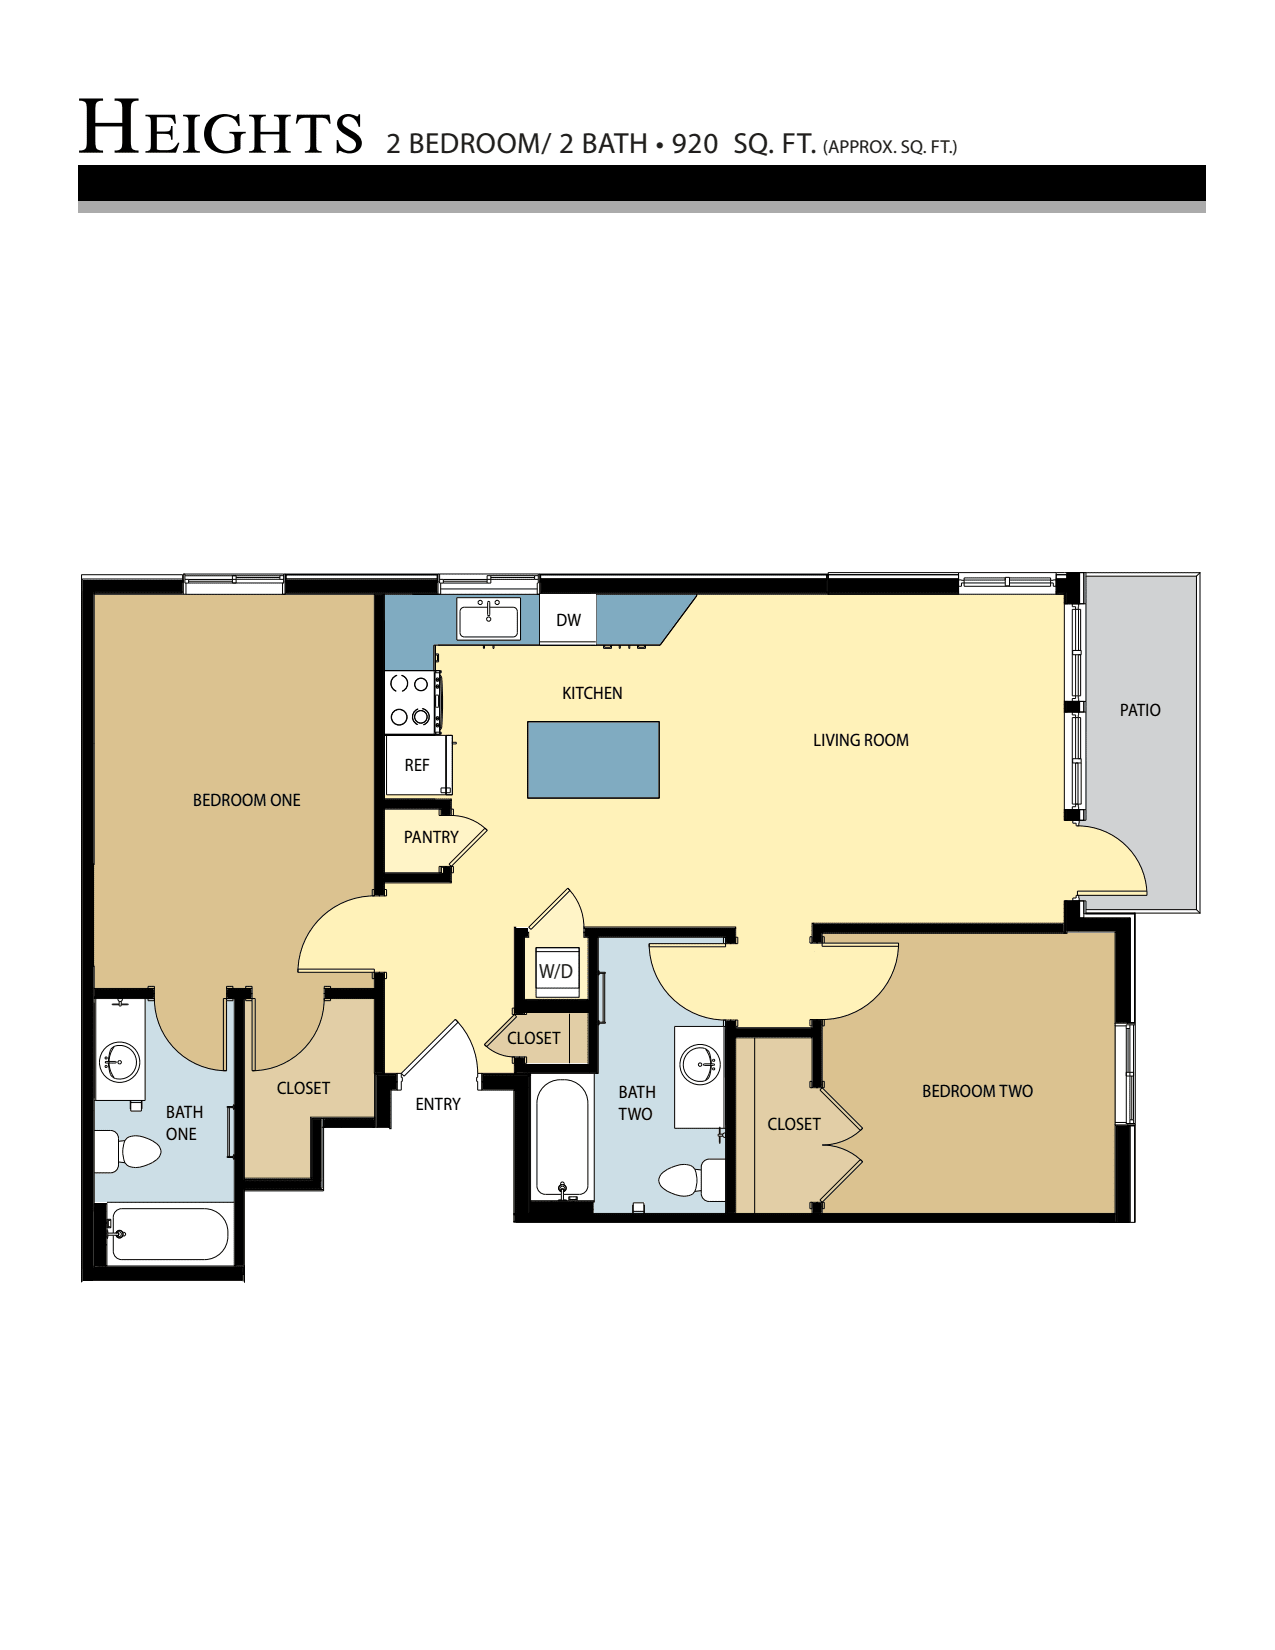 HEIGHTS floor plan - 2 Bed / 2 Bath (920 Sq Ft)